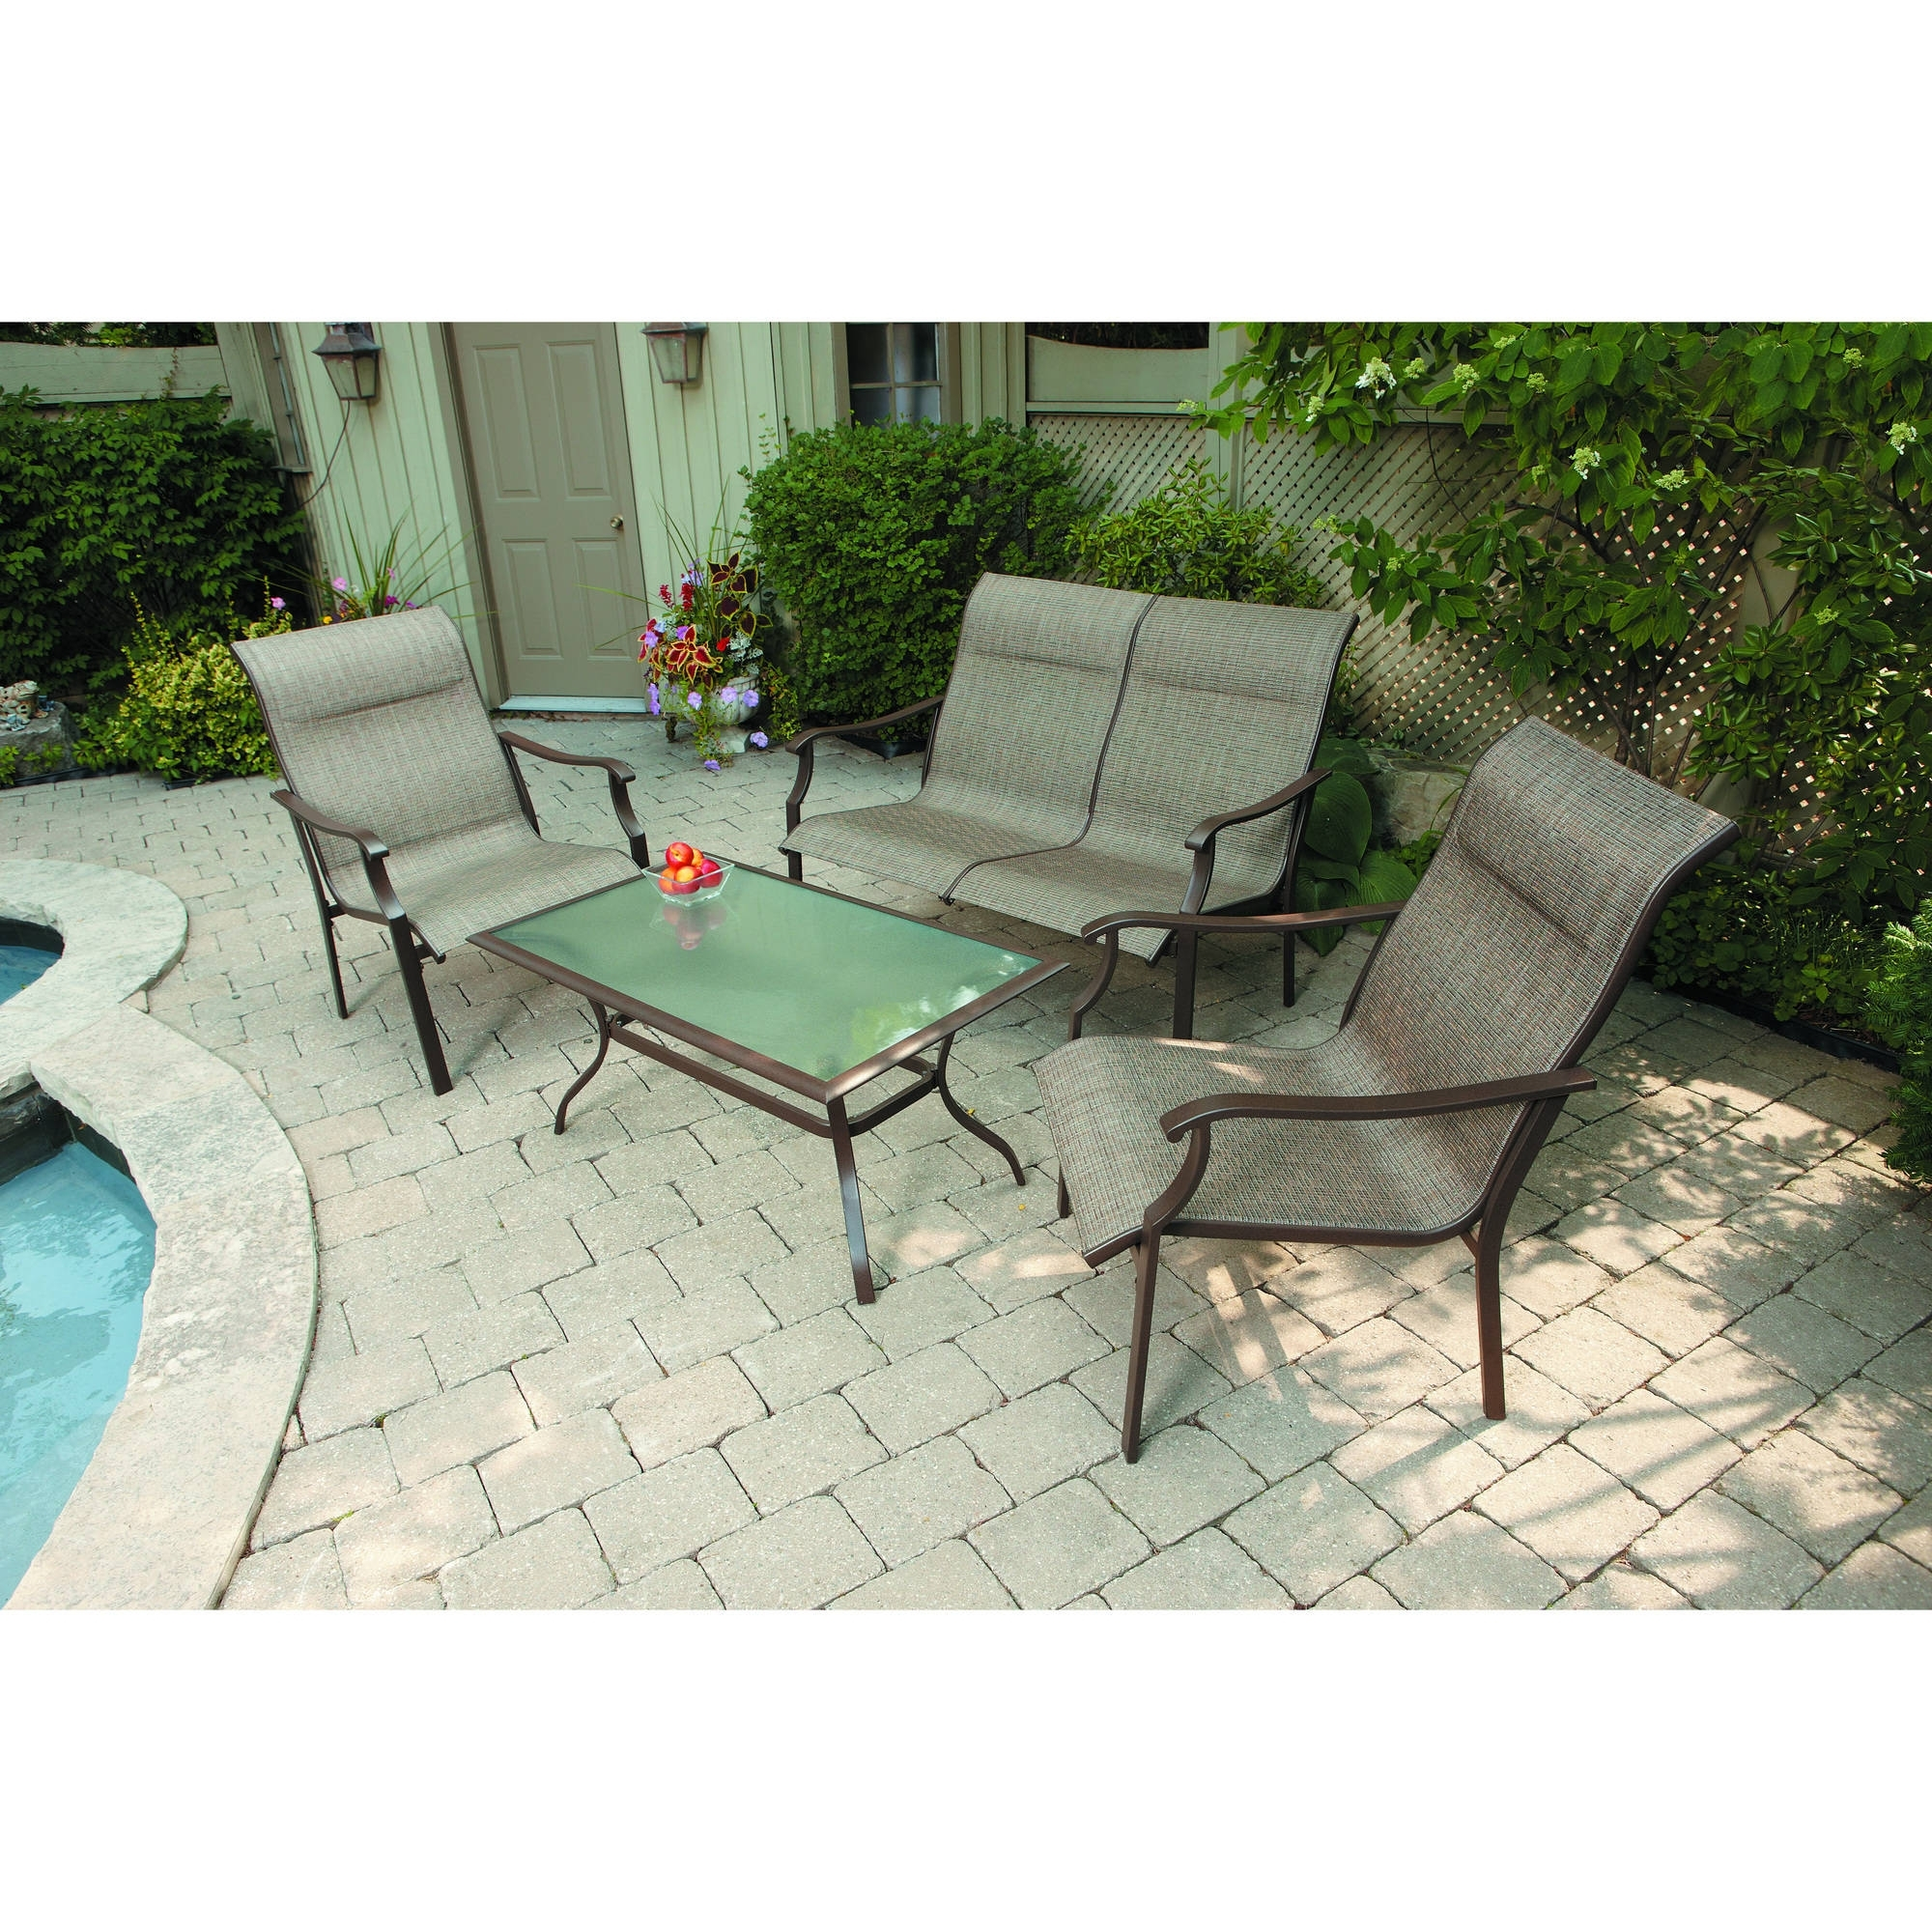 Mainstays York 4Pc Sling Sofa Set – Walmart Inside Latest Sling Patio Conversation Sets (View 6 of 15)